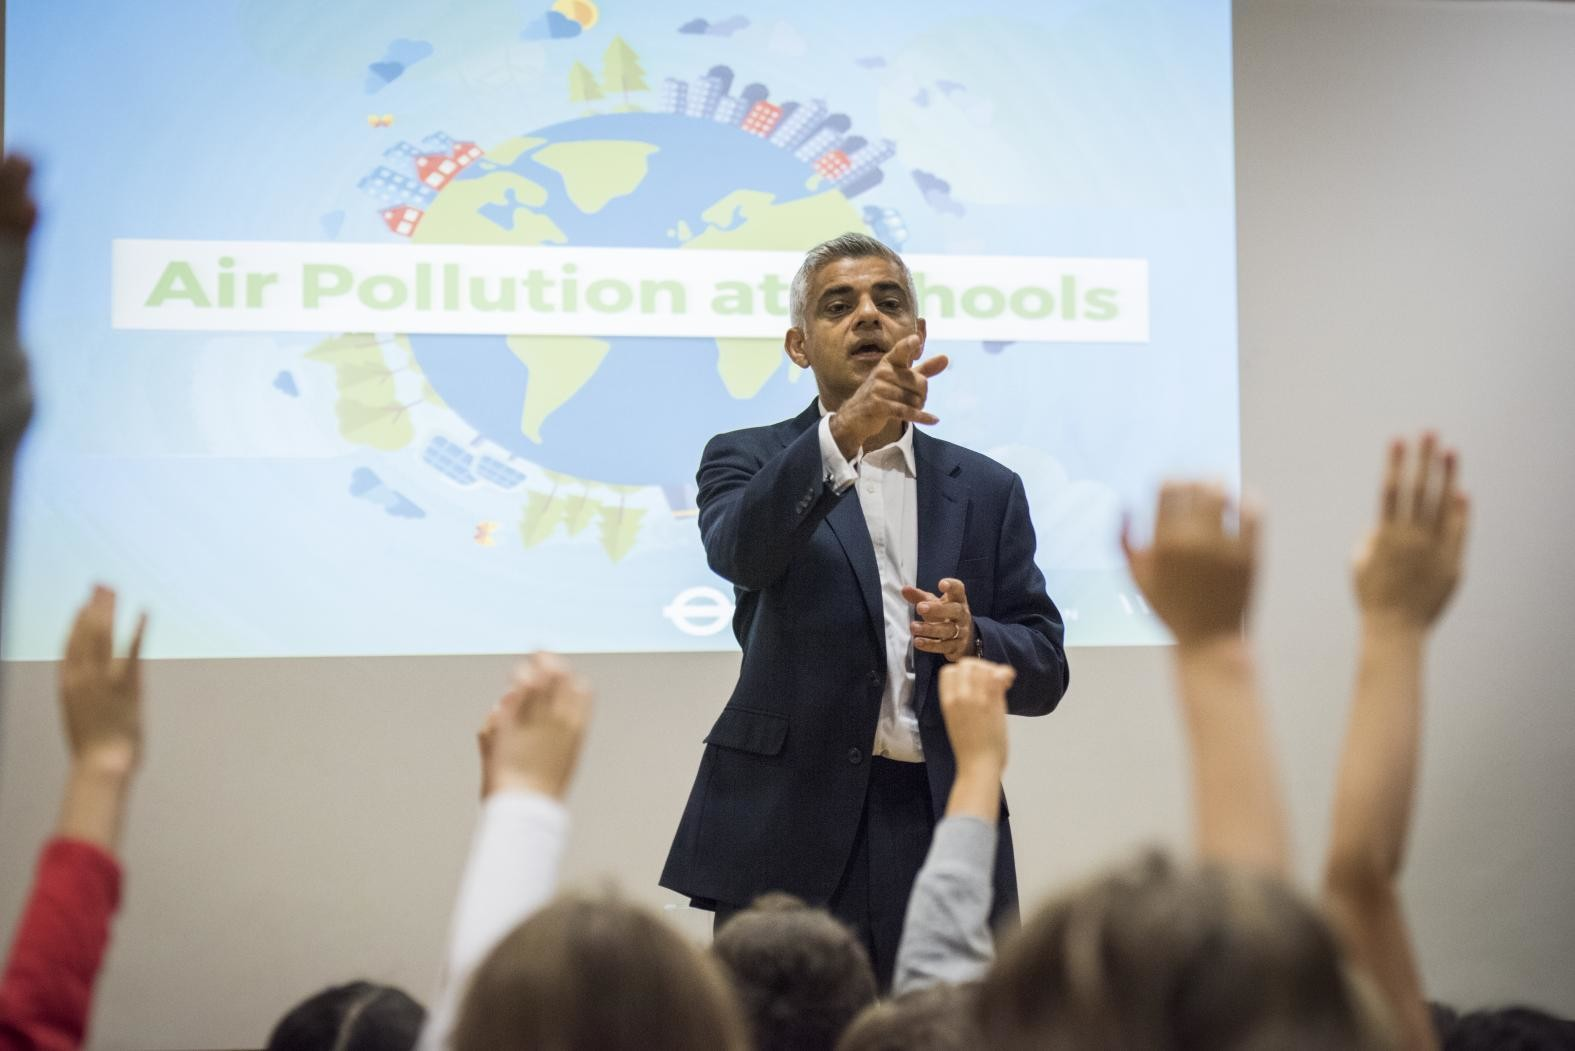 a picture of Mayor Sadiq Khan speaking at an event